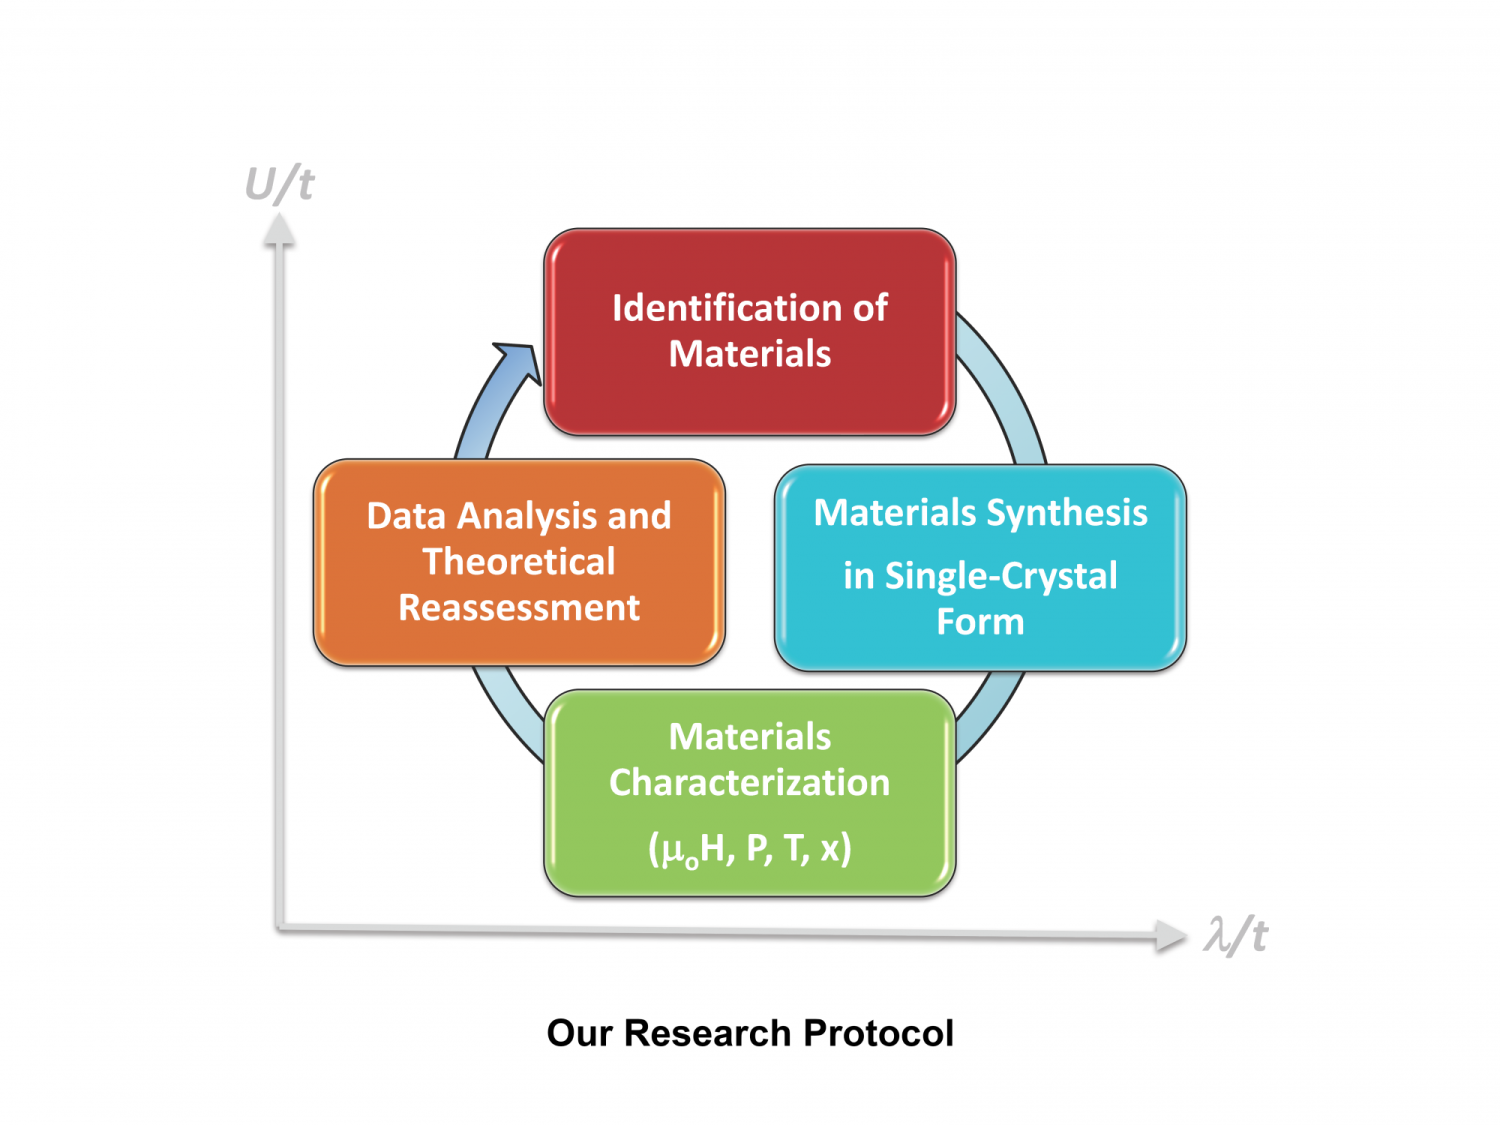 Our research protocol: identification of materials, materials synthesis, materials characterization, data analysis and theoretical reassessment